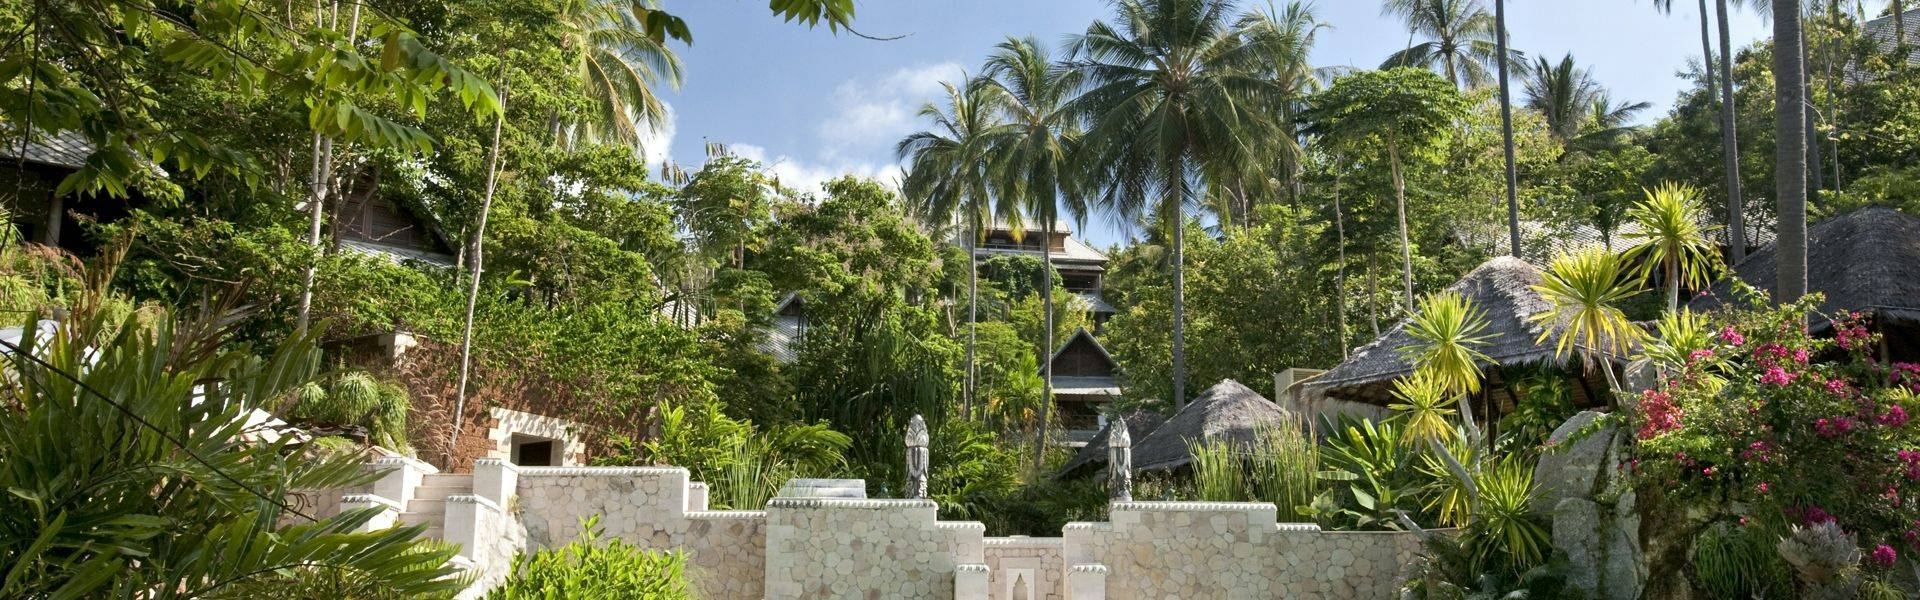 Kamalaya-scenic-pool-view.jpg